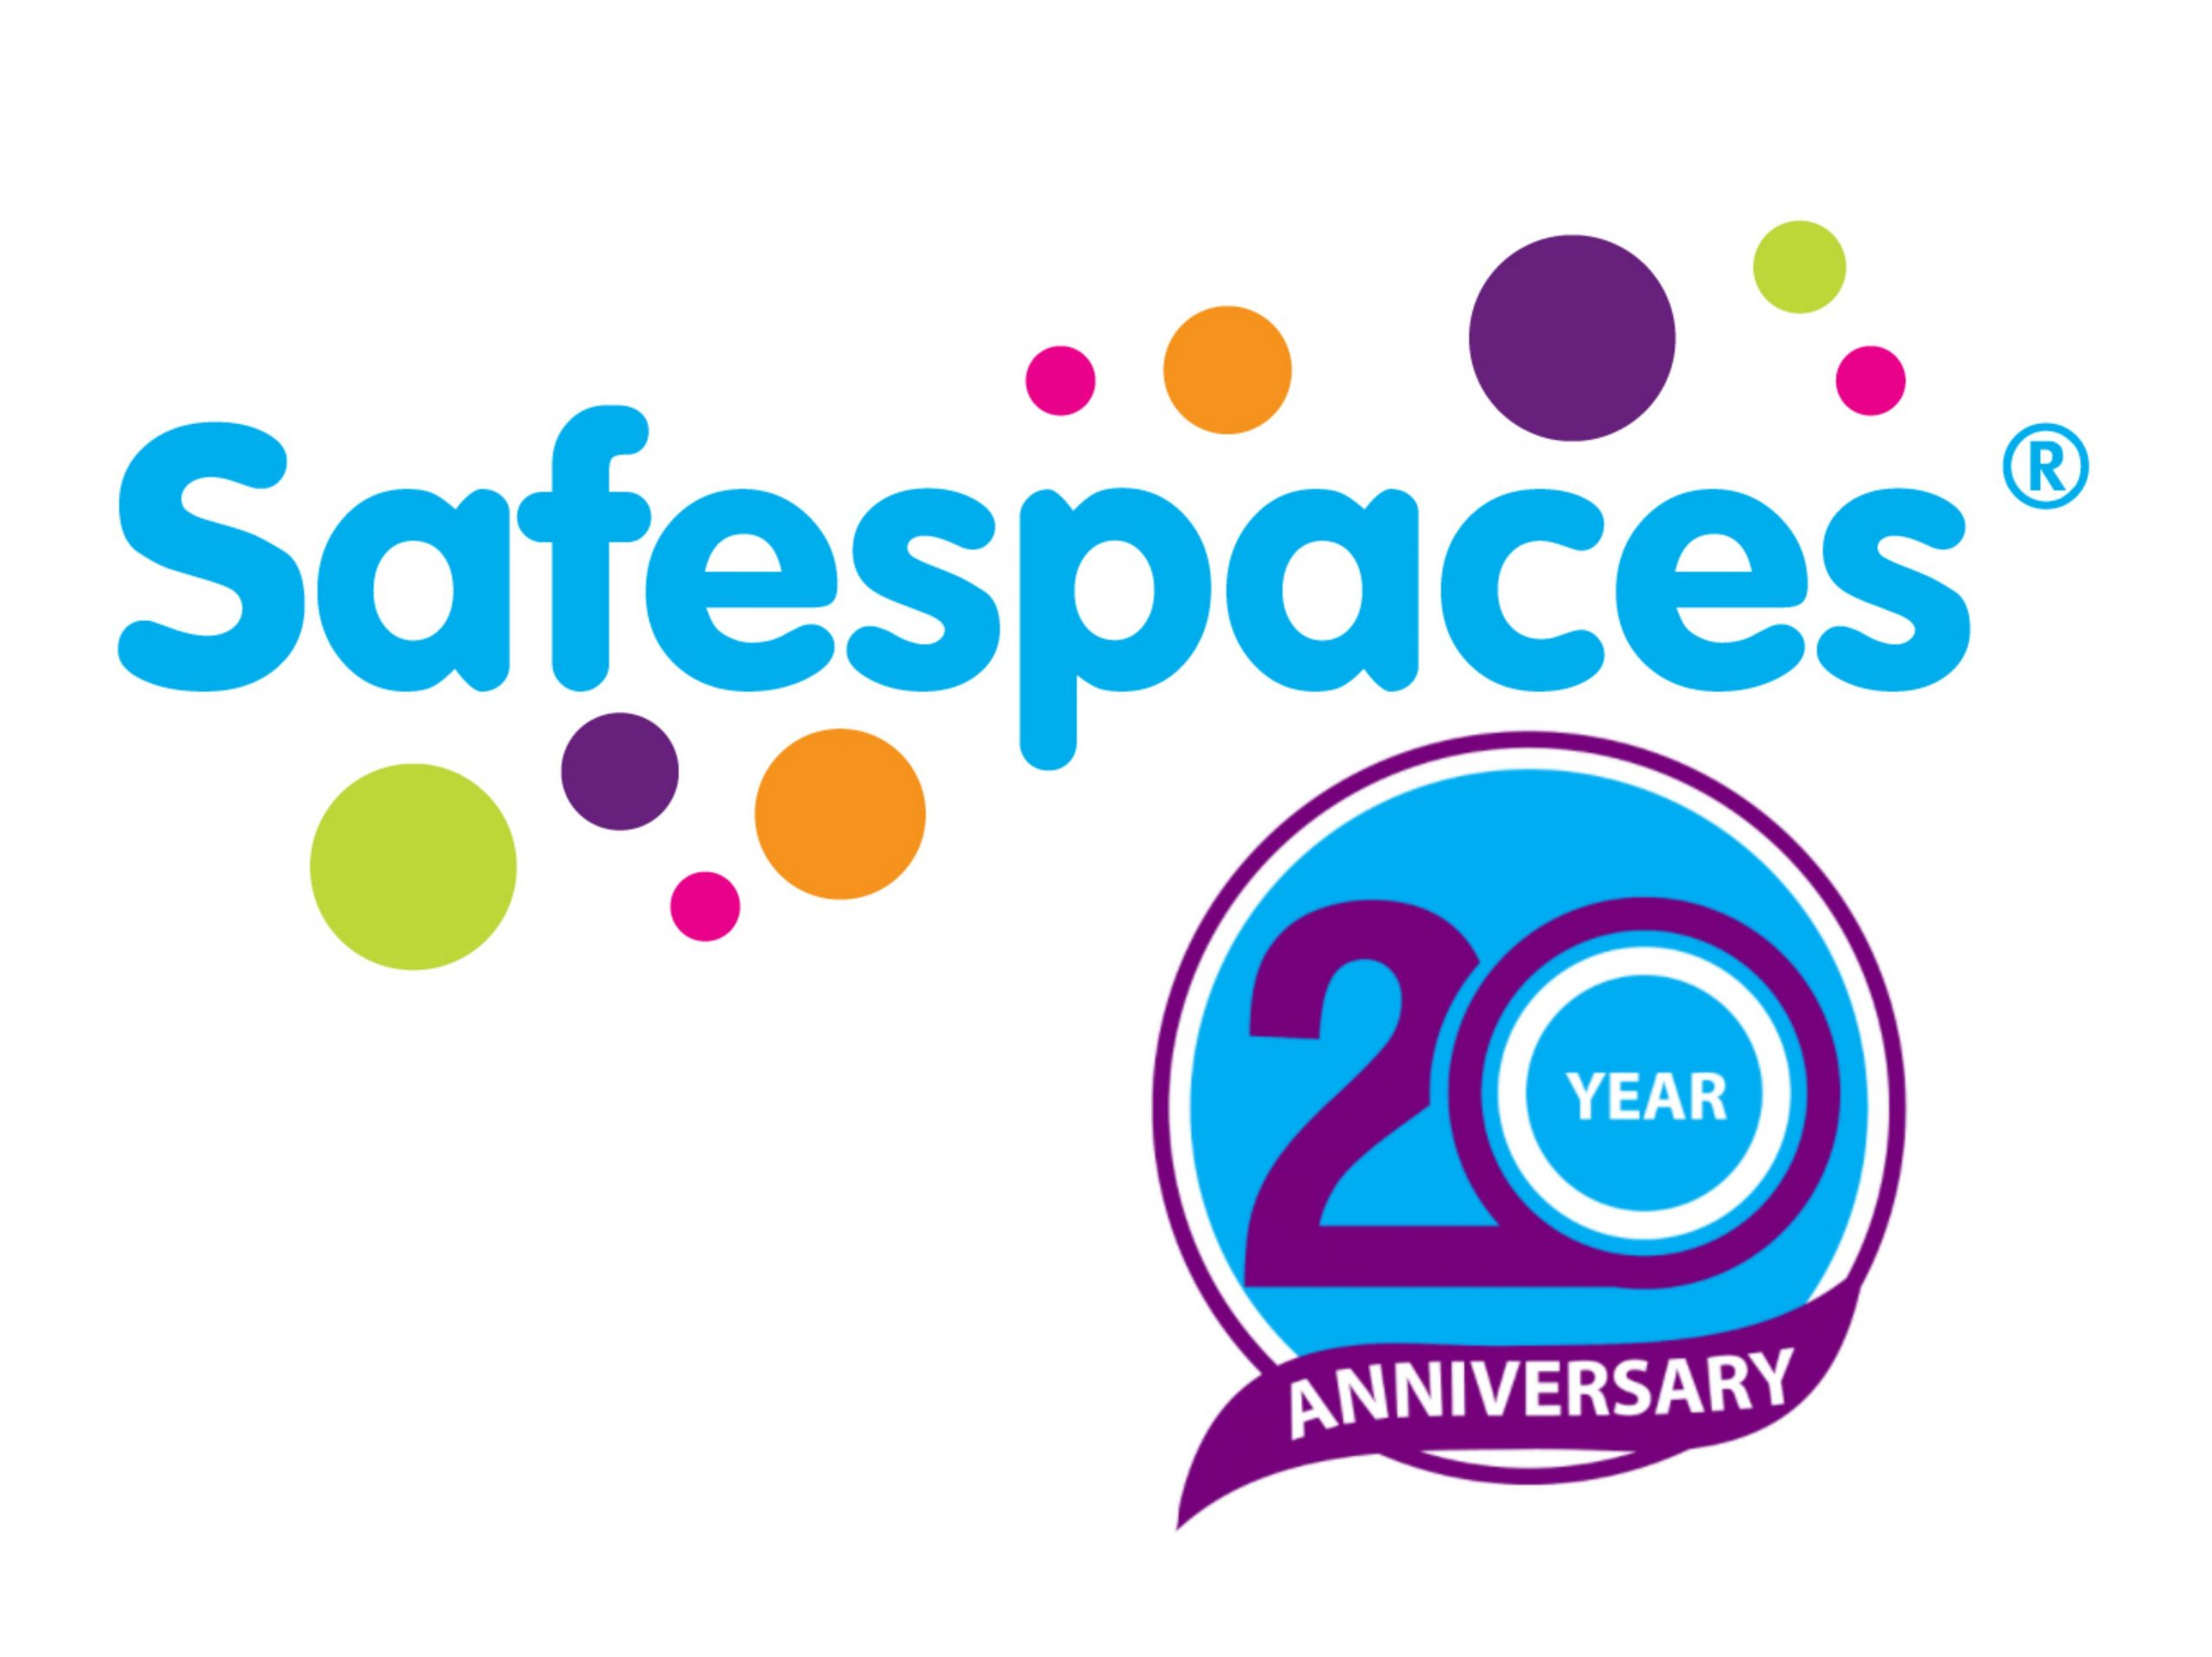 Safespaces Celebrates 20 Year Anniversary